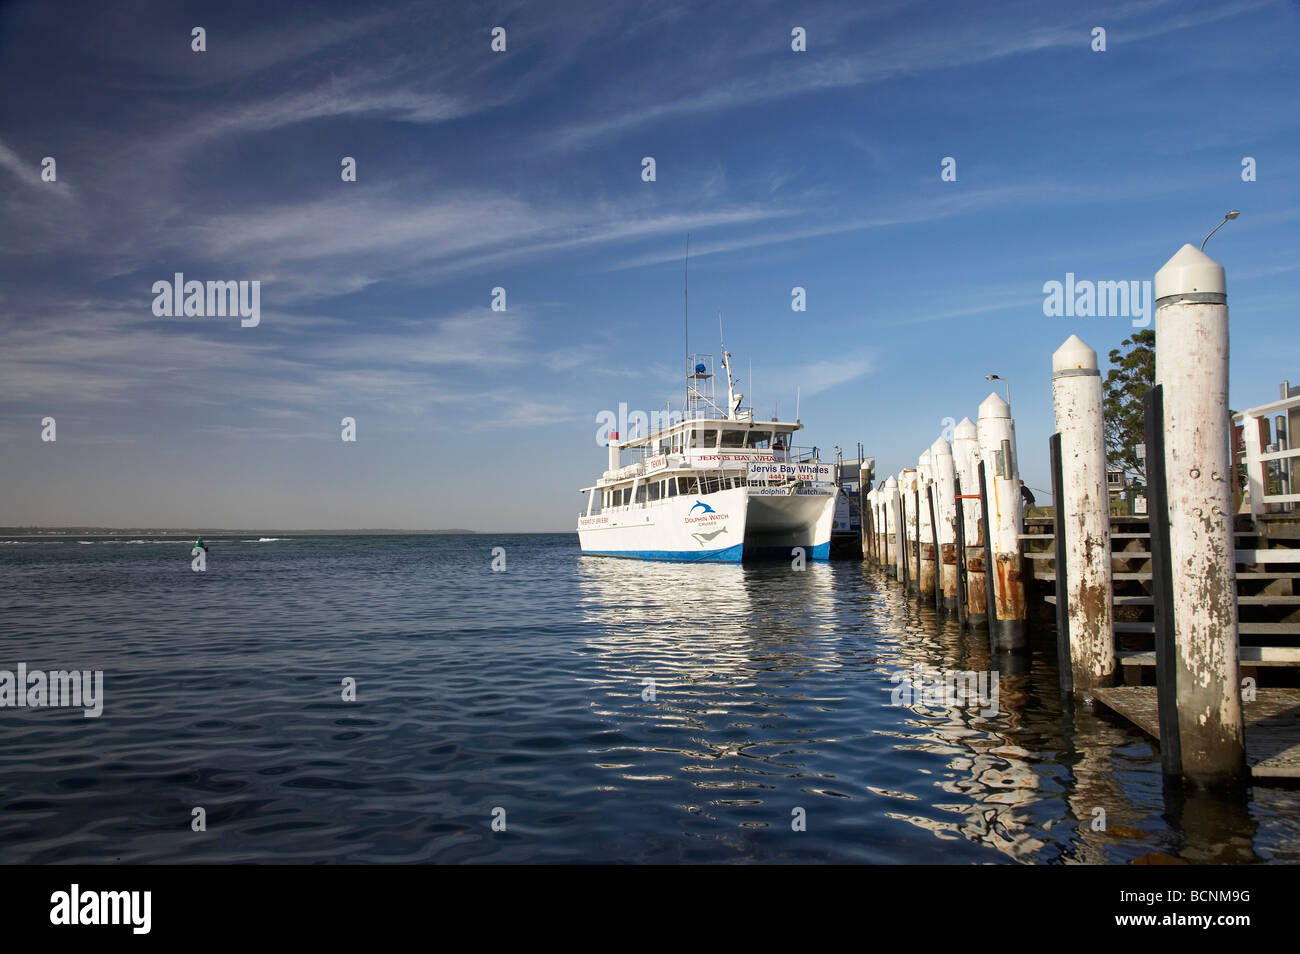 Dolphin and Whale Watching Boat Huskisson Jervis Bay New South Wales Australia - Stock Image